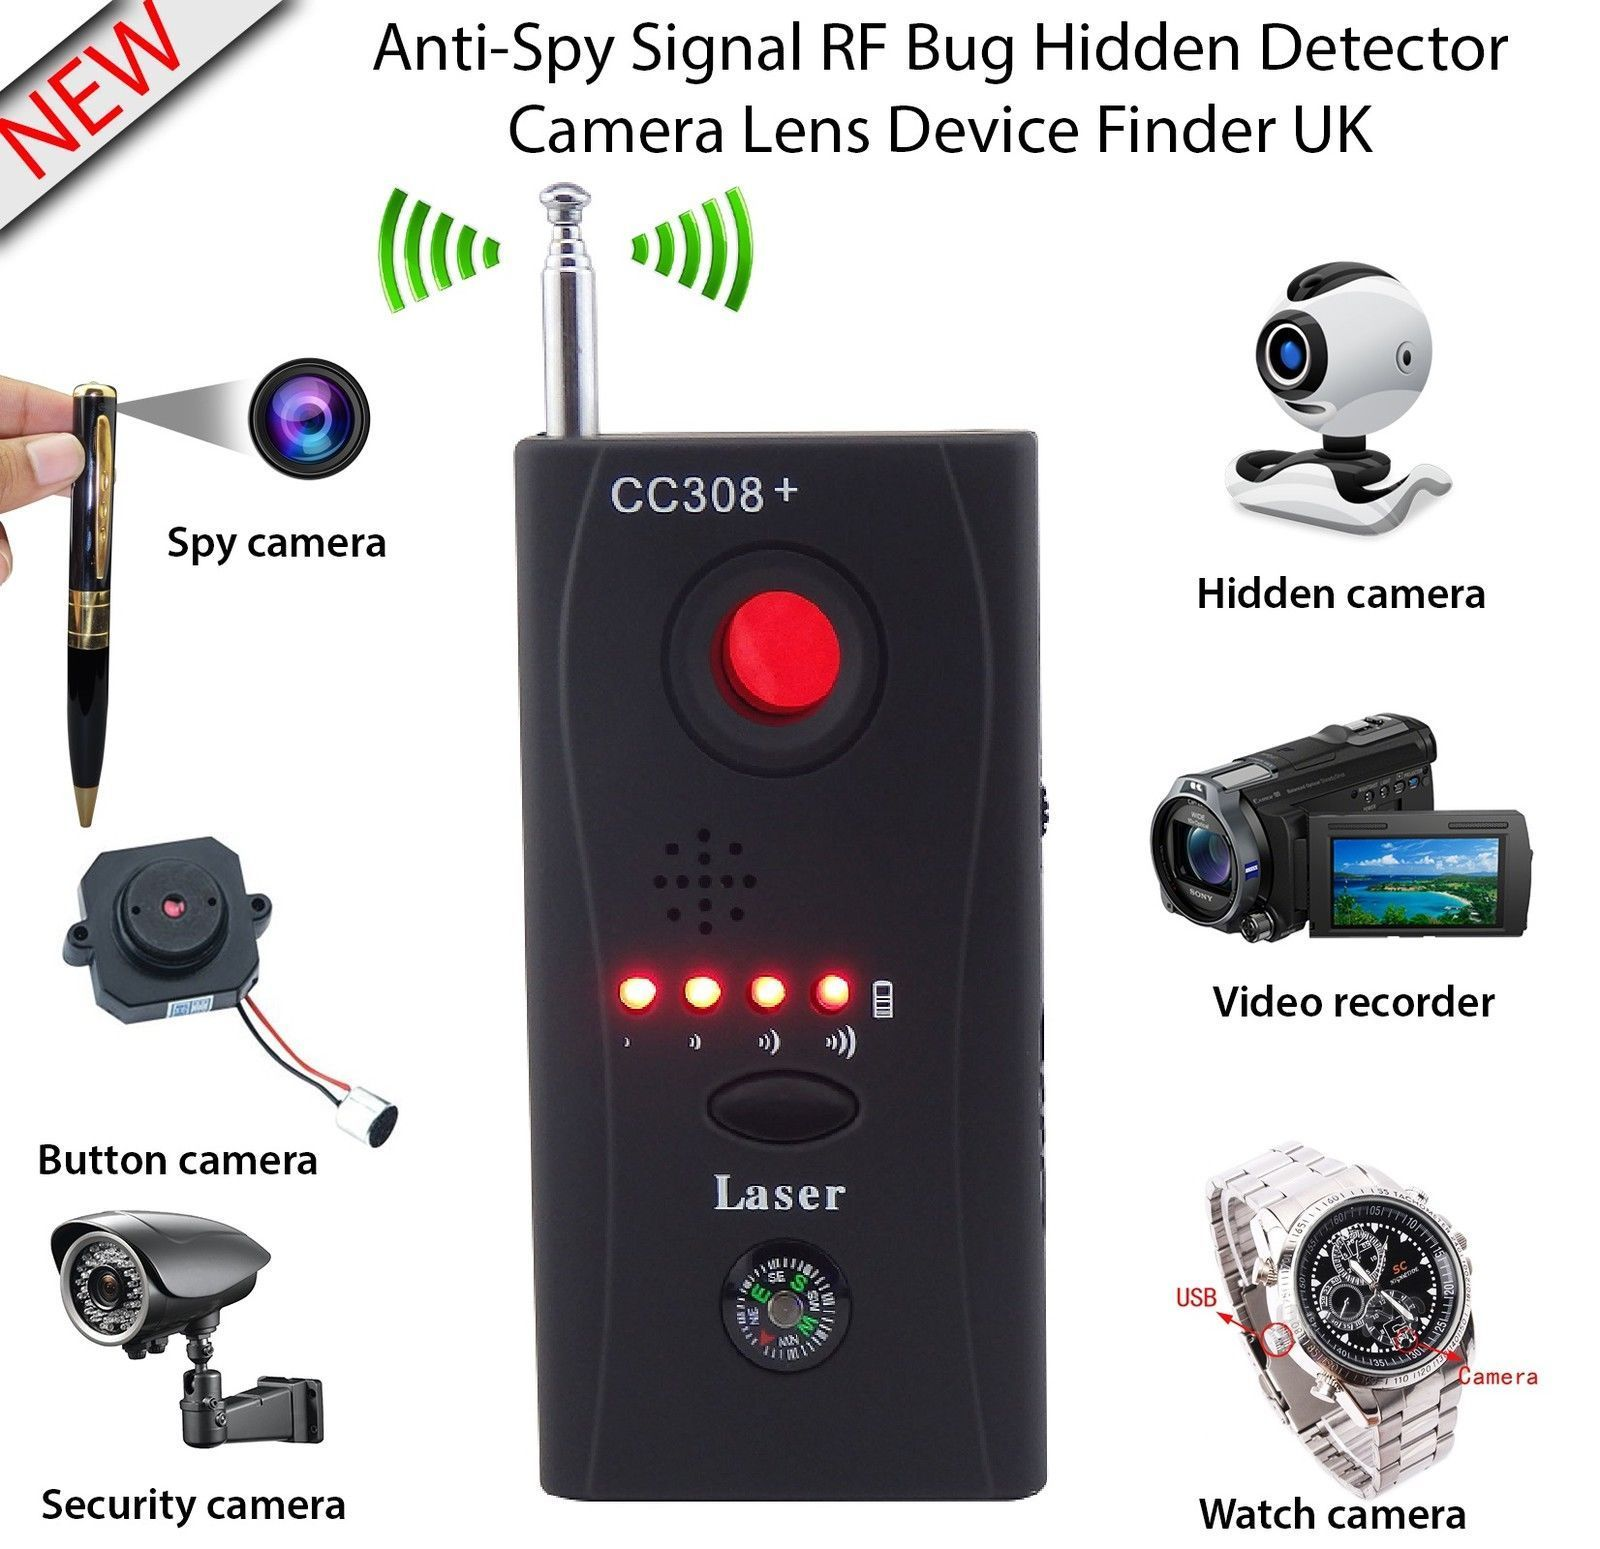 Hidden Camera Gsm Audio Bug Detector Anti Spy Finder Gps Signal Lens Rf Tracker Back To Search Resultshome